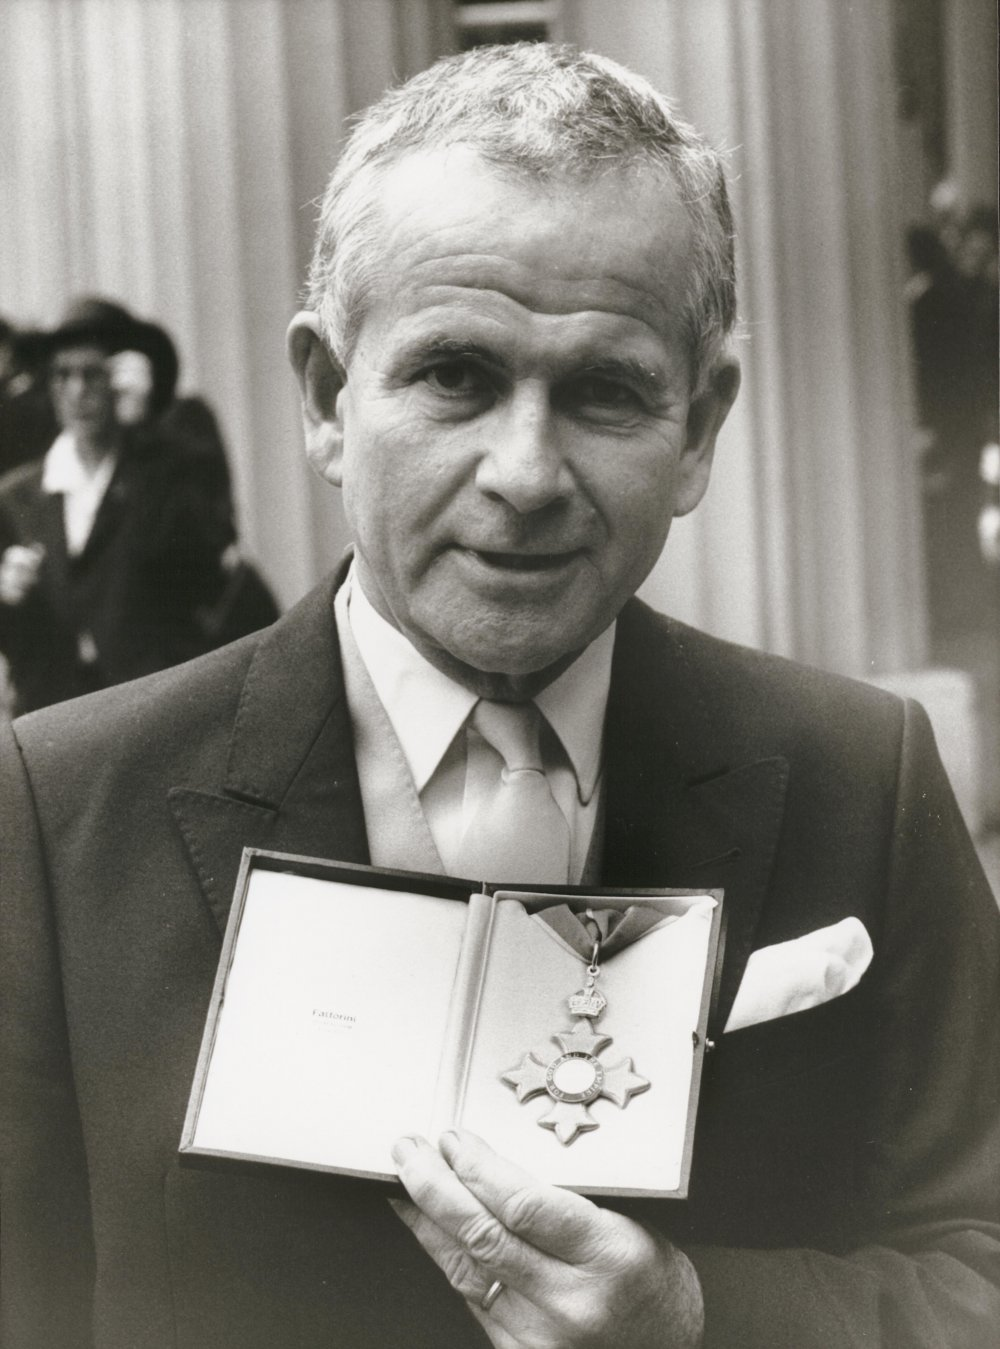 Ian Holm with his 1989 CBE (Commander of the British Empire) medal